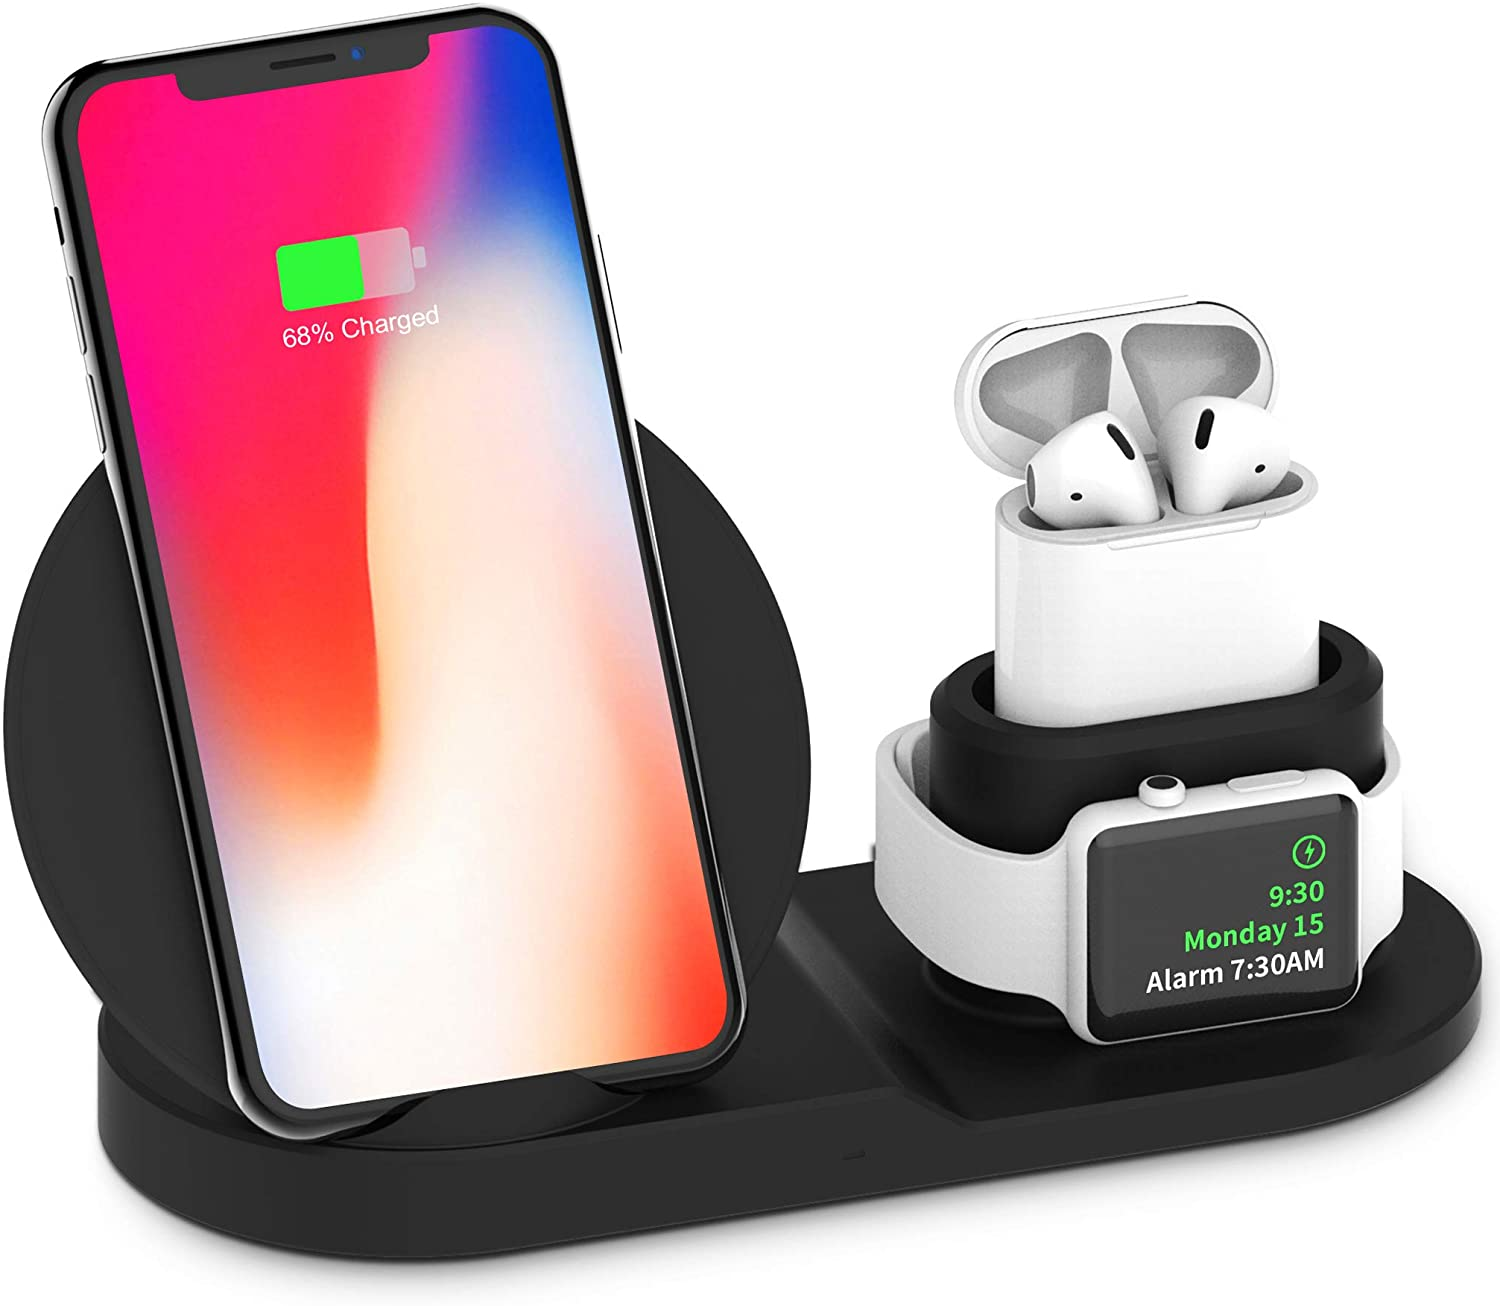 Wireless Charger, 3 in 1 Charging Station, Wireless Charging Stand Dock Charger Pad Compatible with Apple Watch and iPhone Airpod iPhone X/XS/XR/Xs Max/8 Plus iWatch Airpods1 2 Samsung.